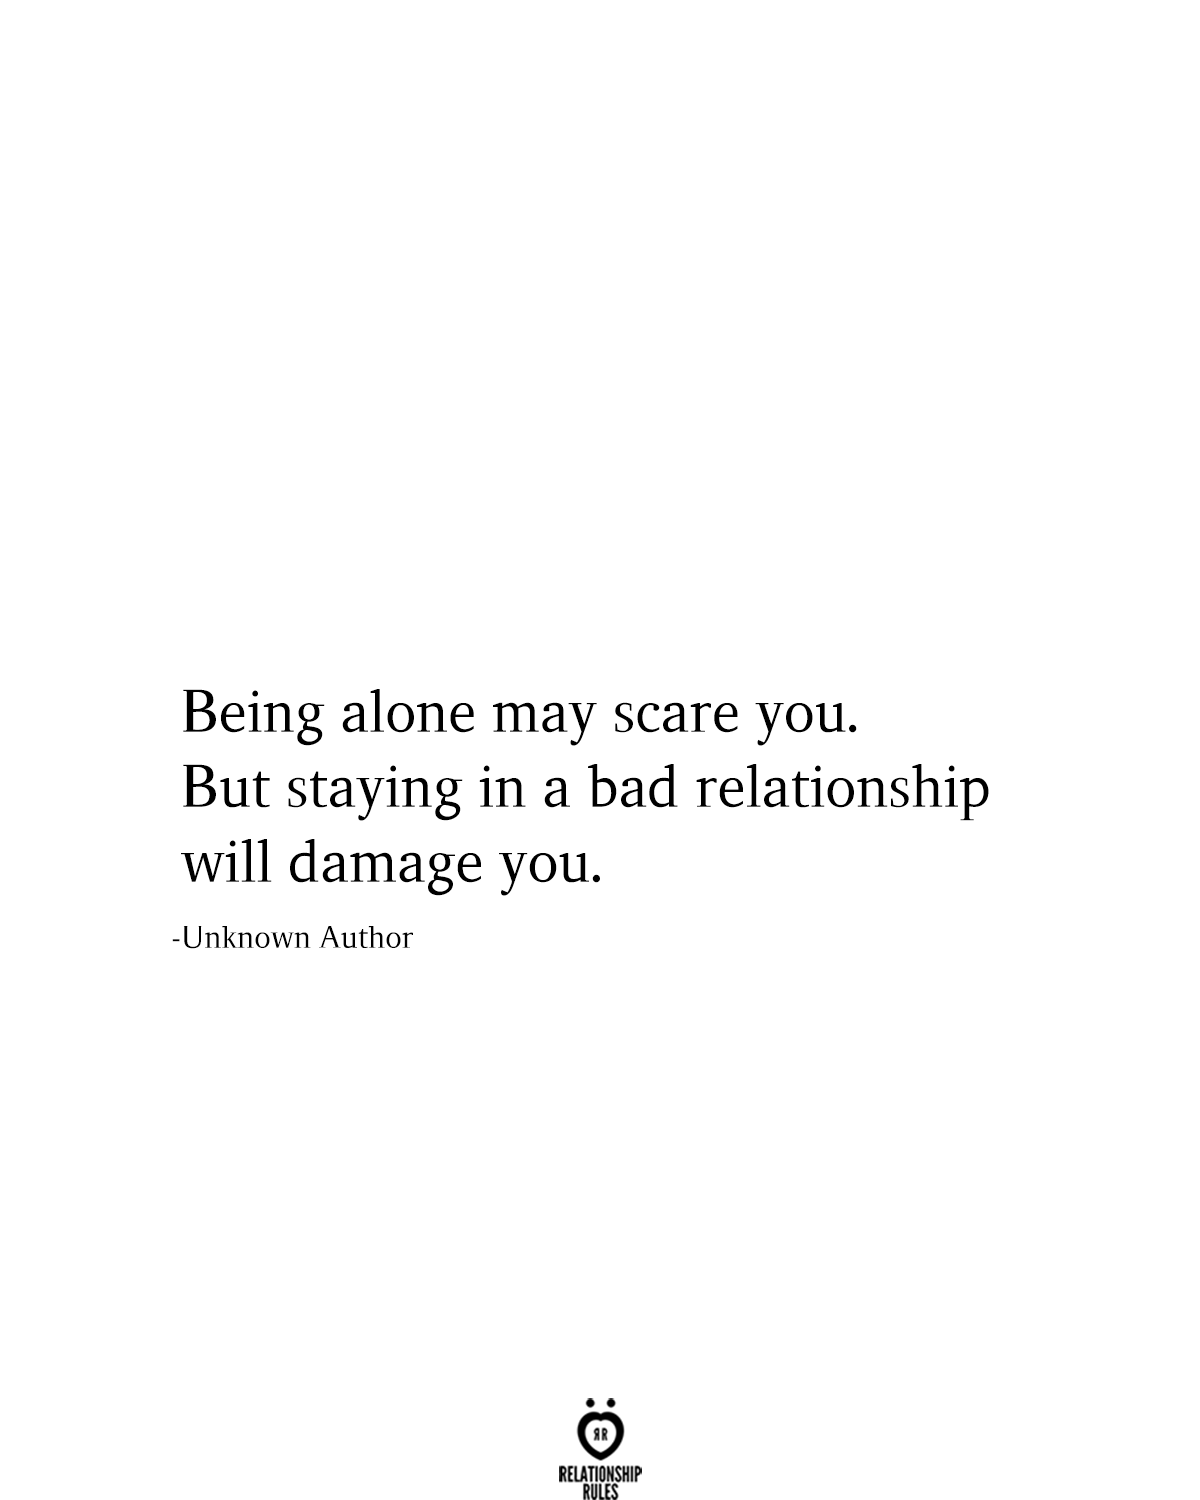 Being Alone May Scare You. But Staying In A Bad Relationship Will Damage You